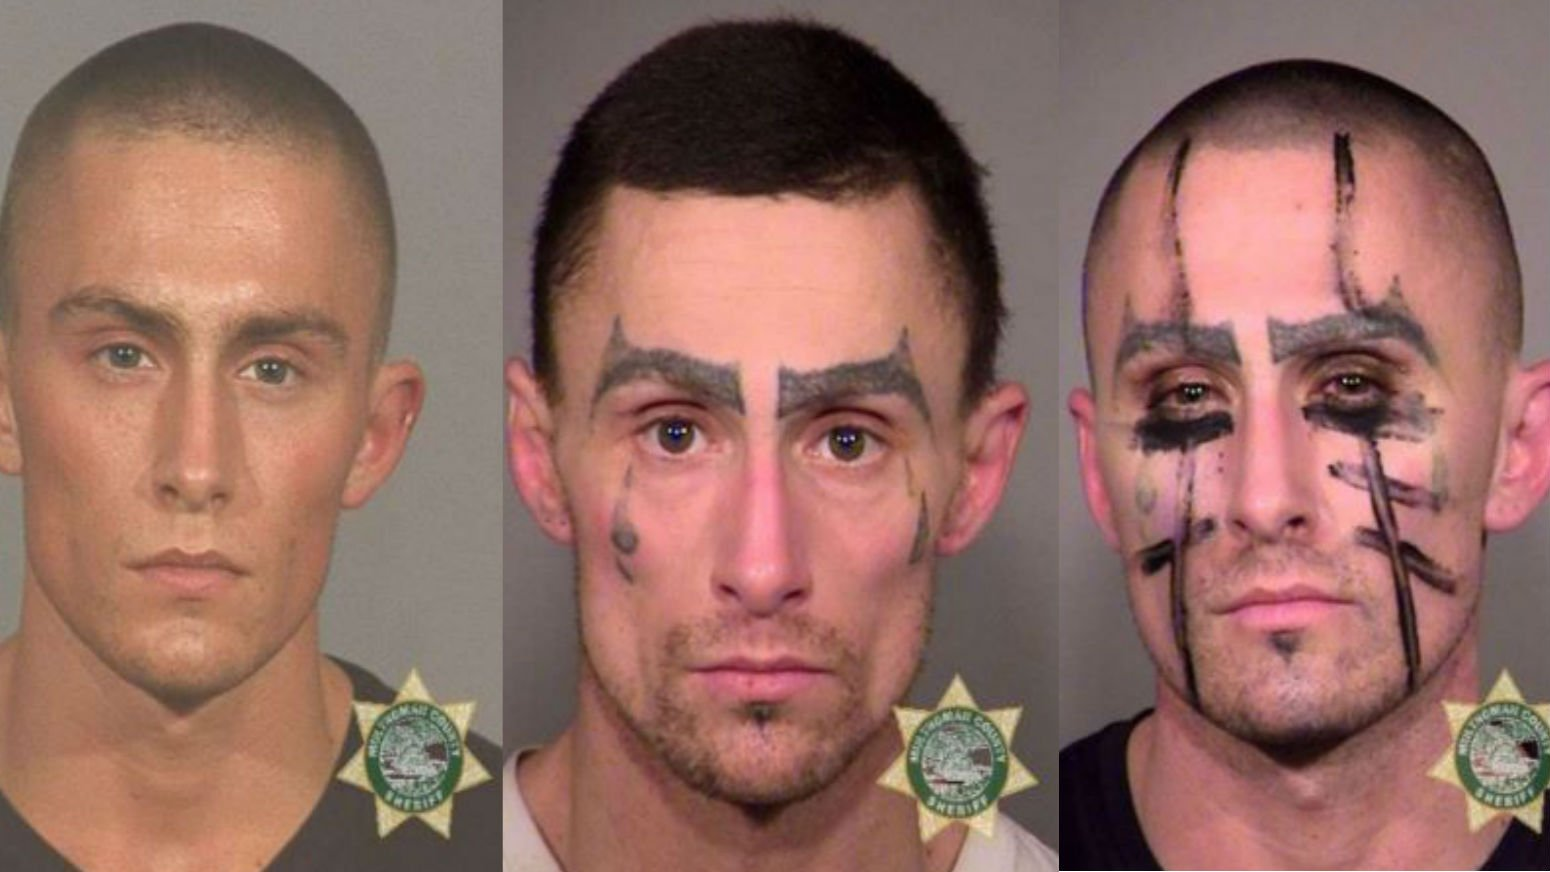 PHOTOS: Multnomah Co. Sheriff's Office